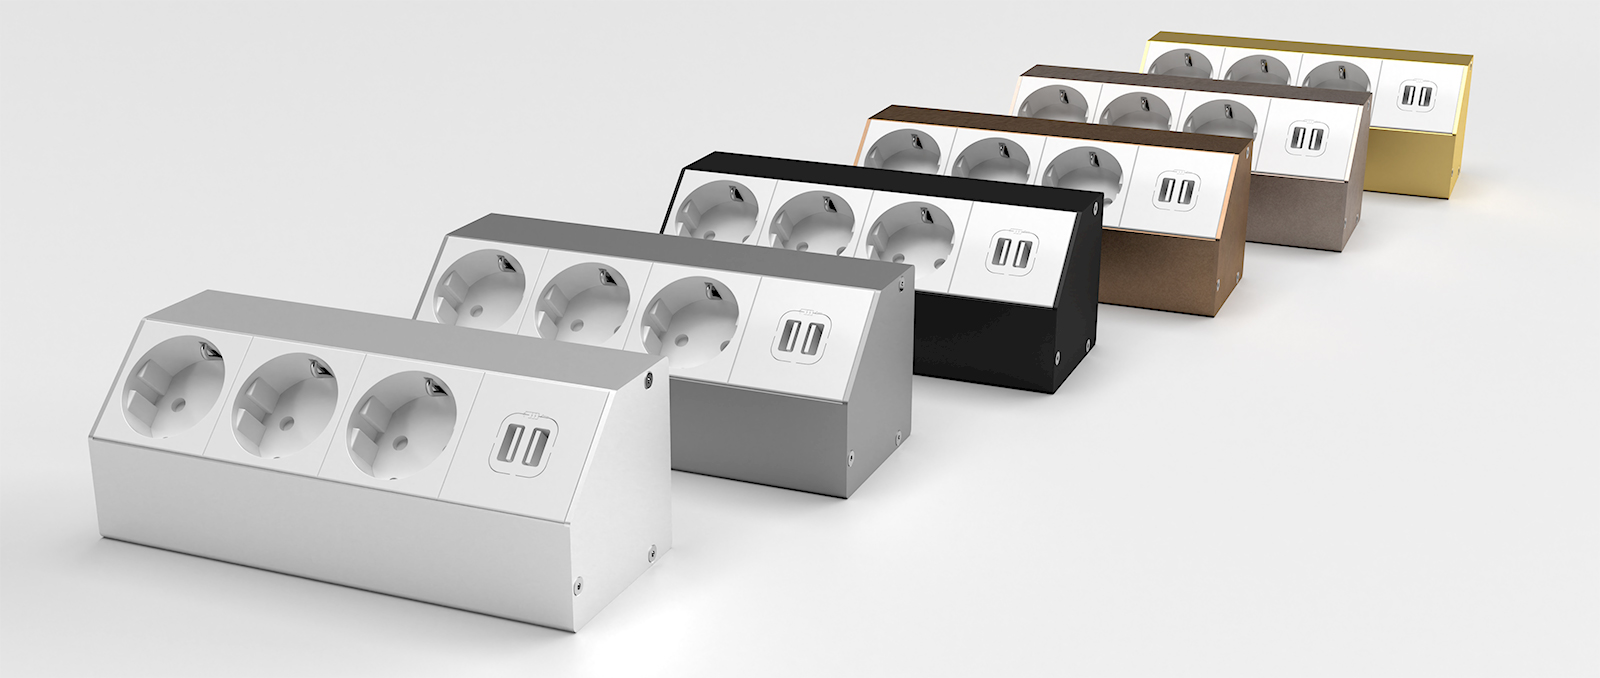 Table sockets-4204-various-colors-banners-1600×678